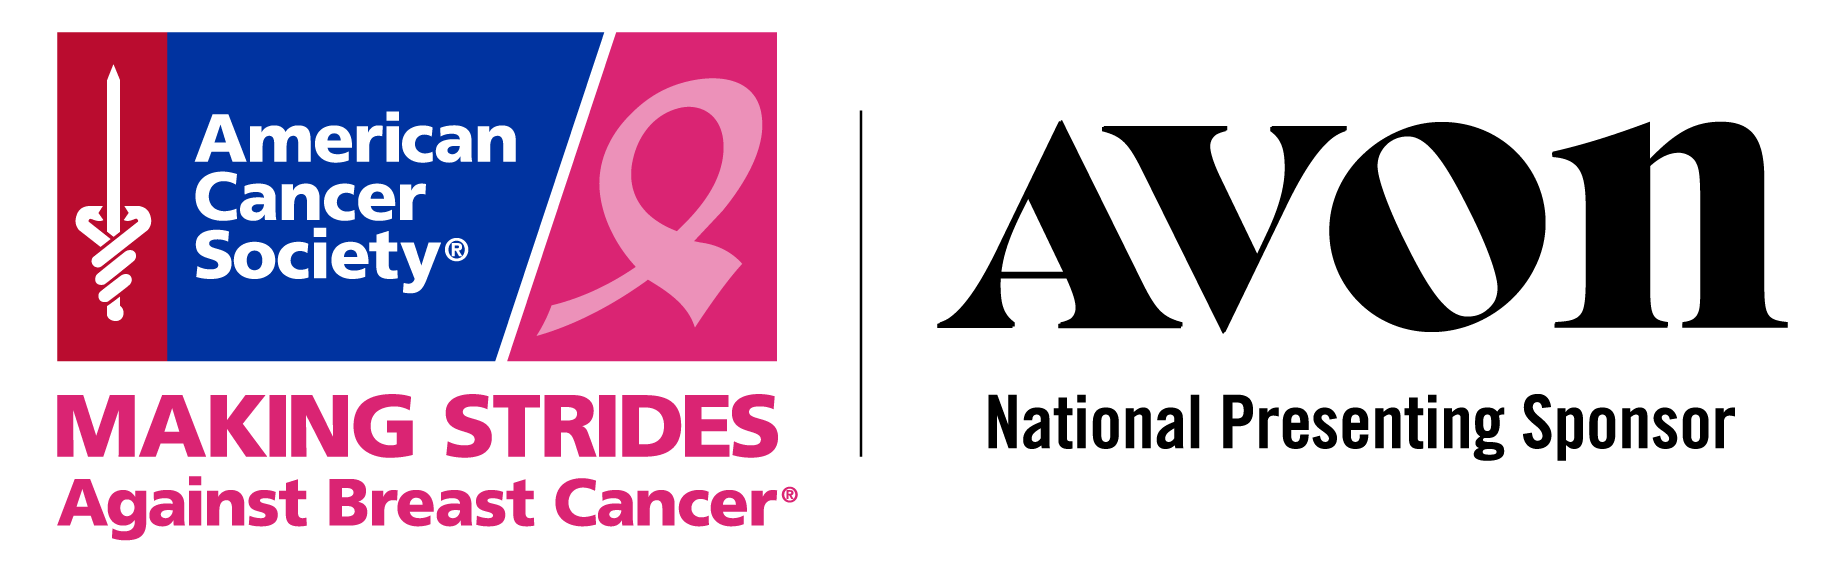 Sheer Science walk against breast cancer